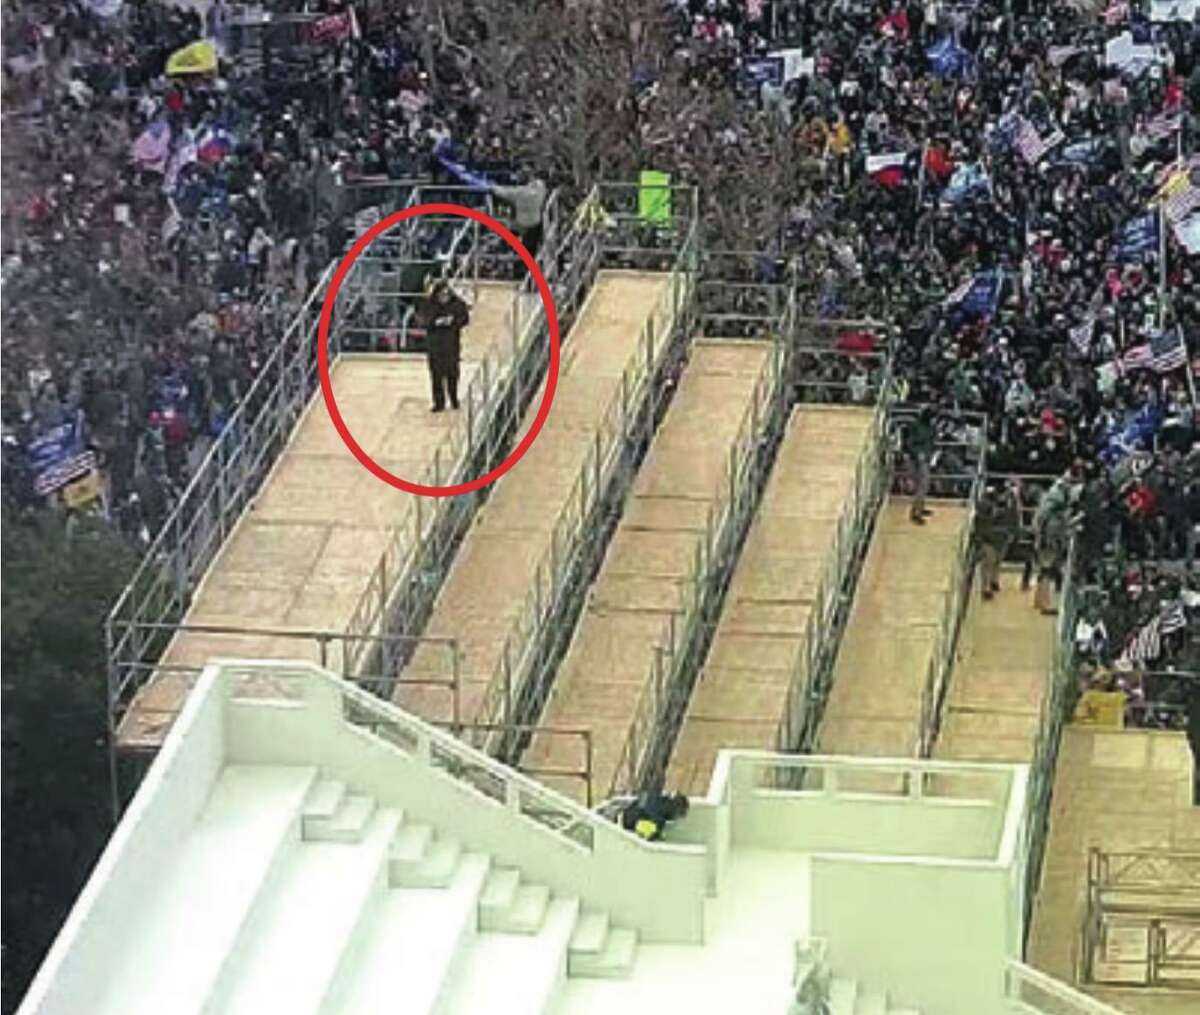 Surveillance footage shows someone consistent in the appearance with Patrick Edward McCaughey III standing atop the scaffolding outside the Capitol, Jan. 6, 2021, according to an affidavit.